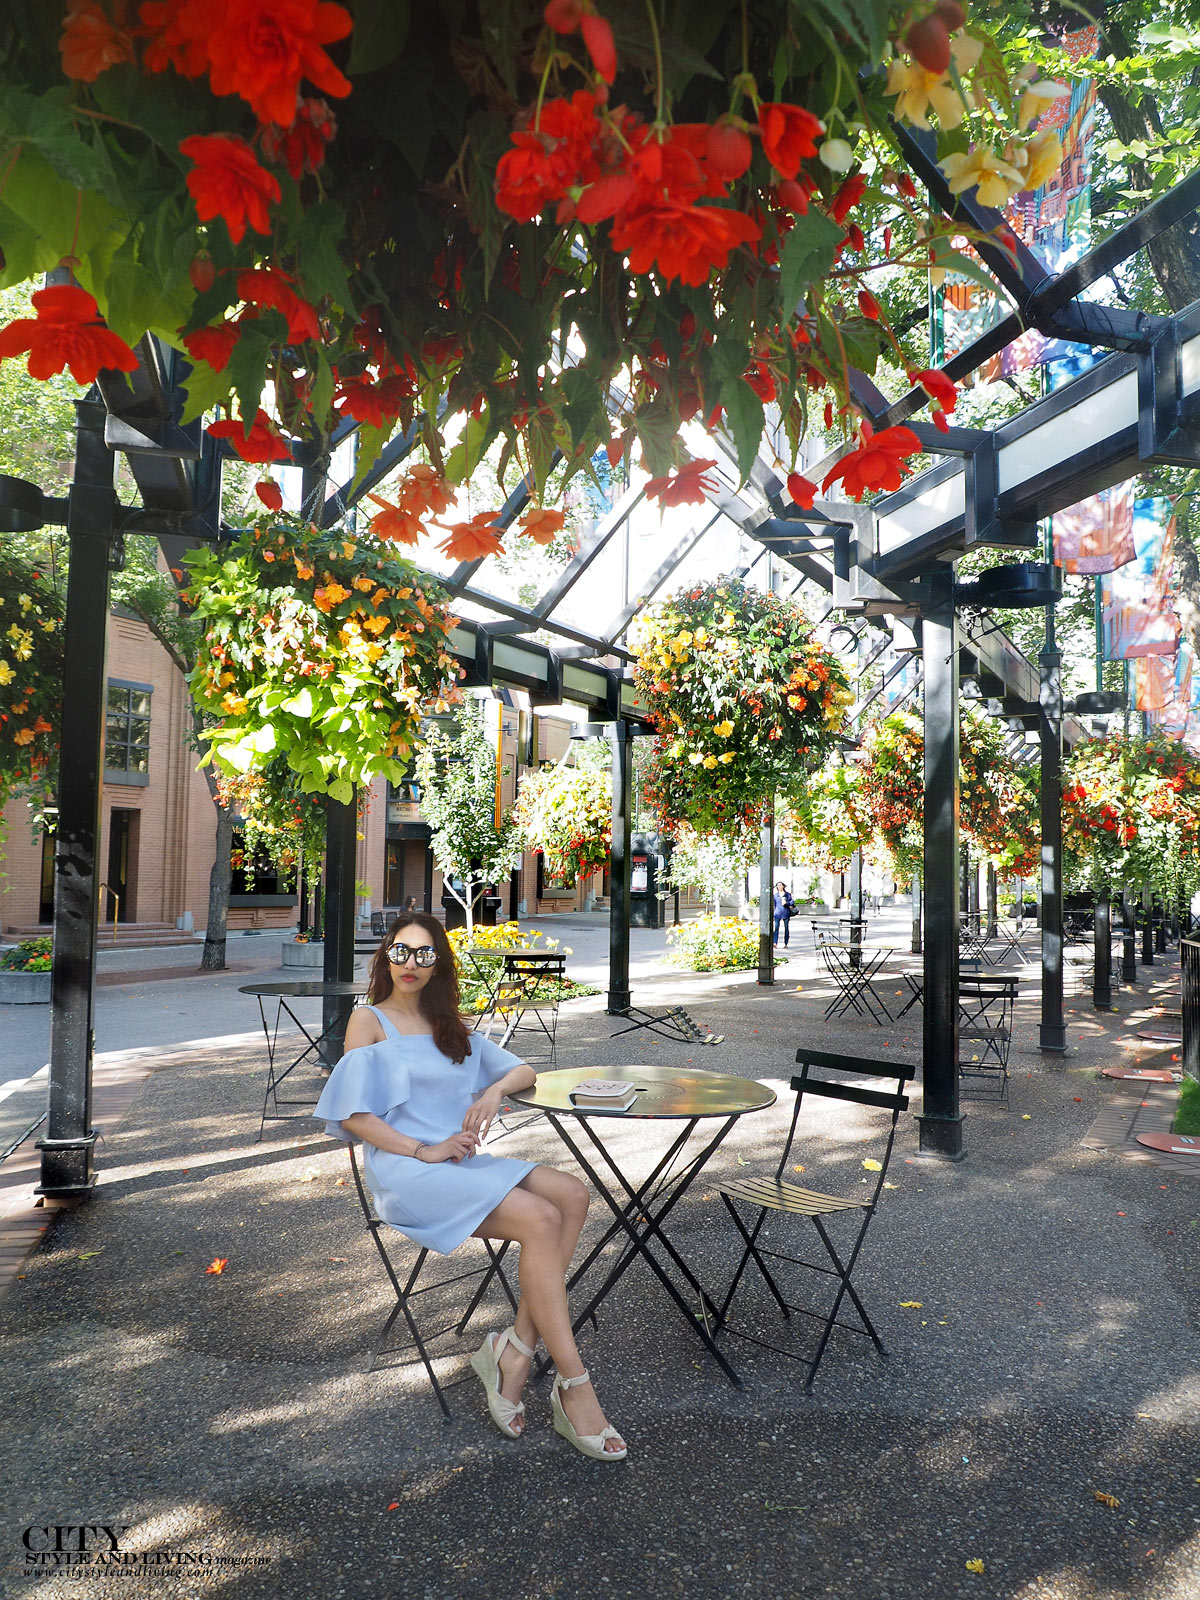 City STyle and Living The Editors Notebook style blogger Downtown Calgary colourful flowers blooming during summer wearing an off shoulder topshop dress and wedges sitting